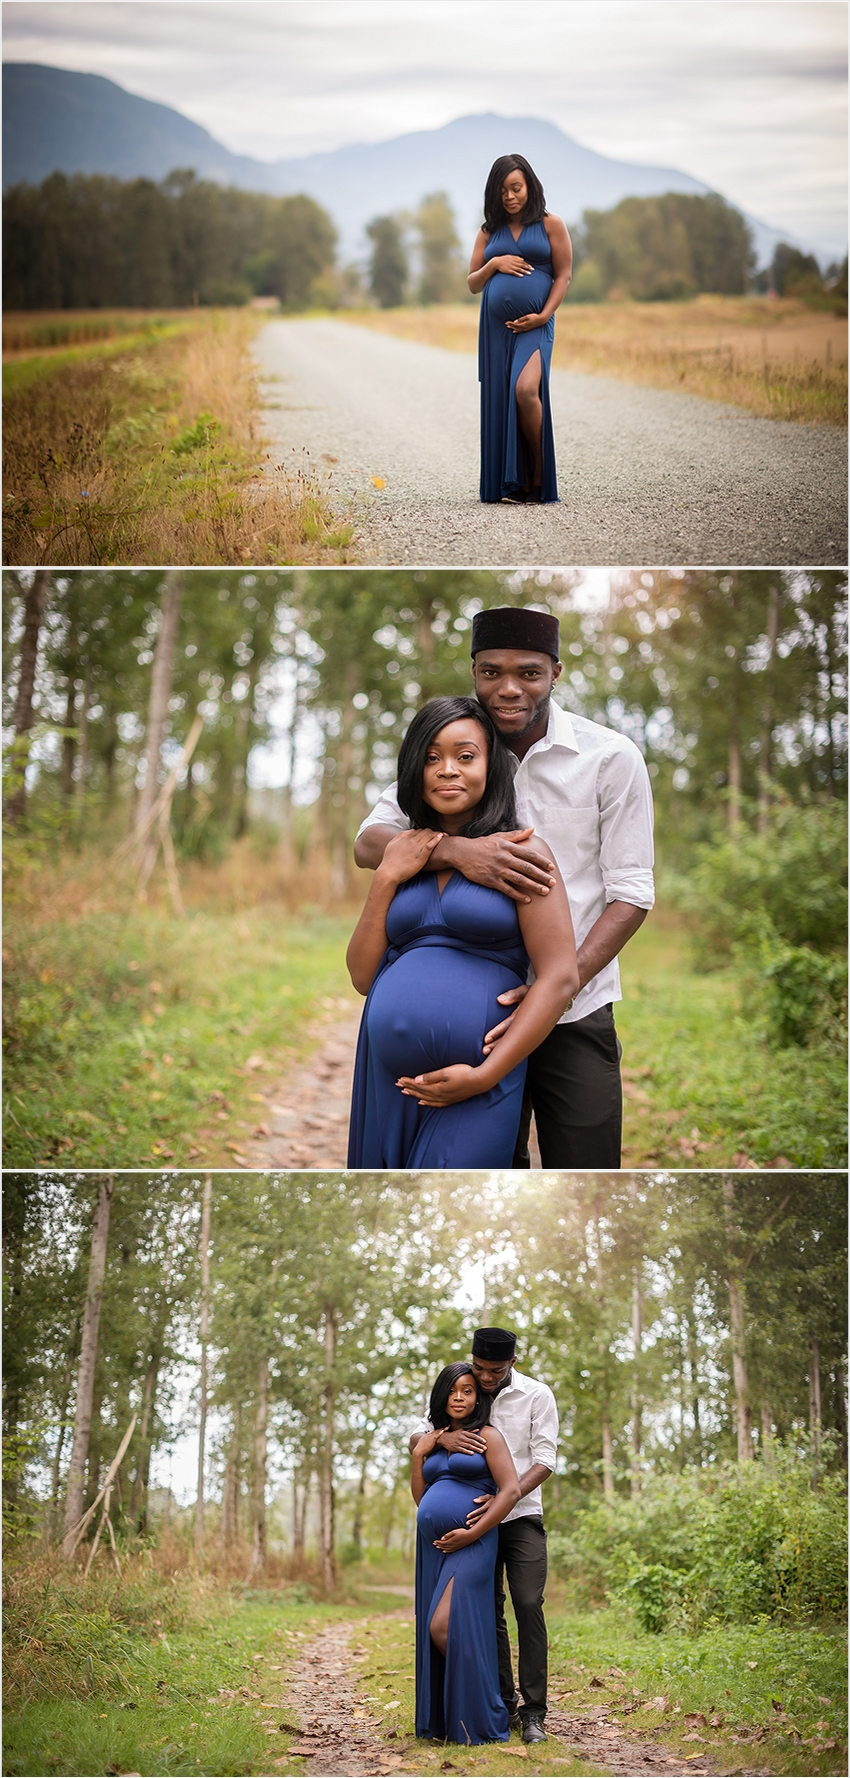 abbotsford-maternity-maternity-photographer-002-side-2